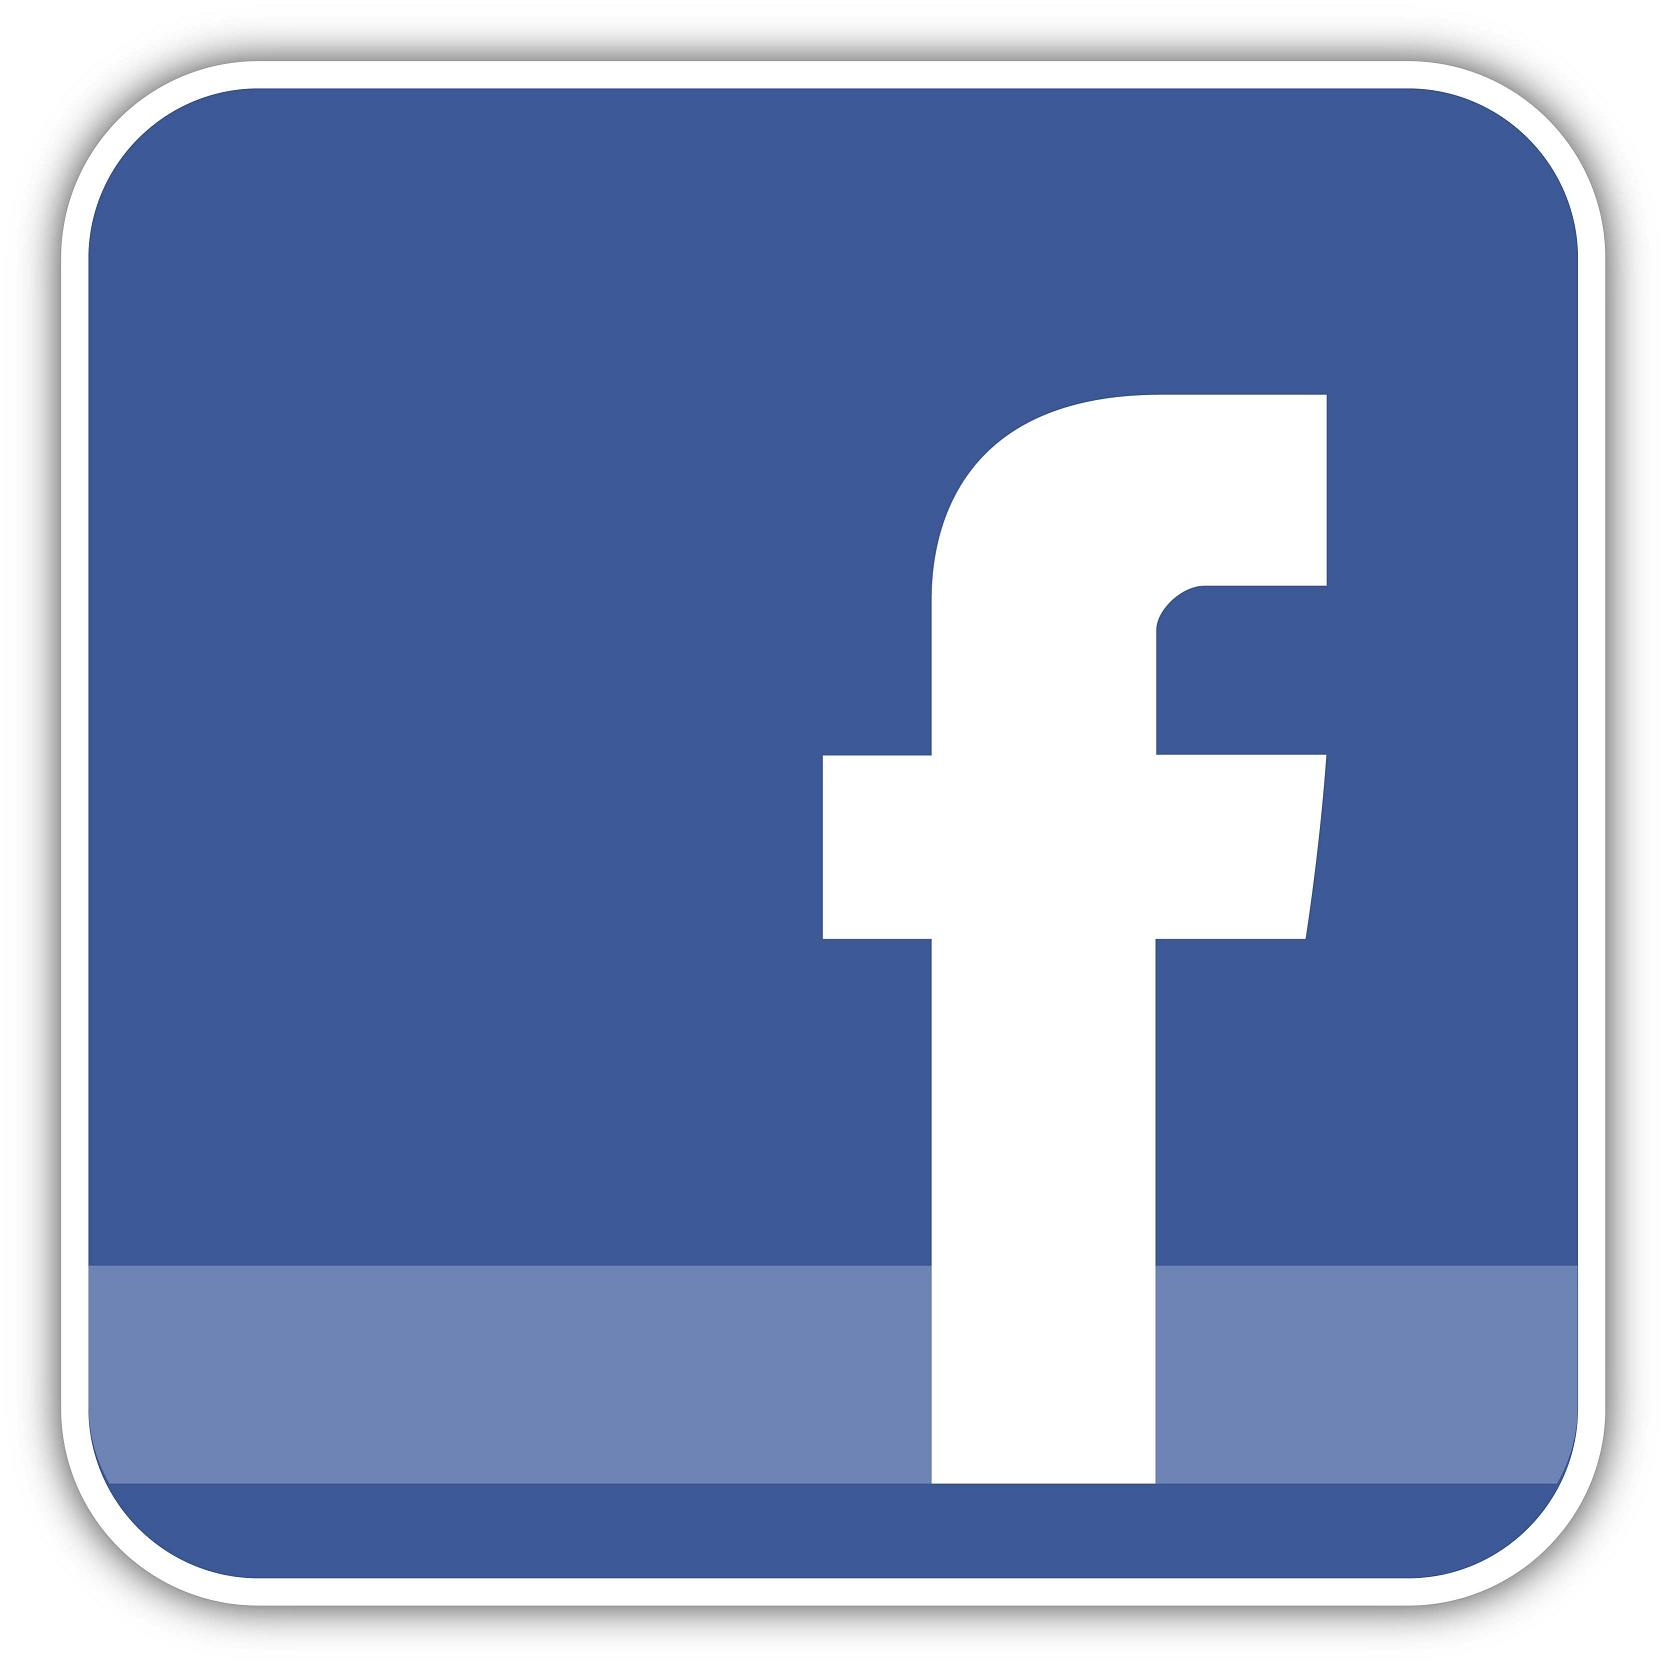 Clipart facebook like button jpg freeuse library Facebook Like Button Big - The Cliparts jpg freeuse library